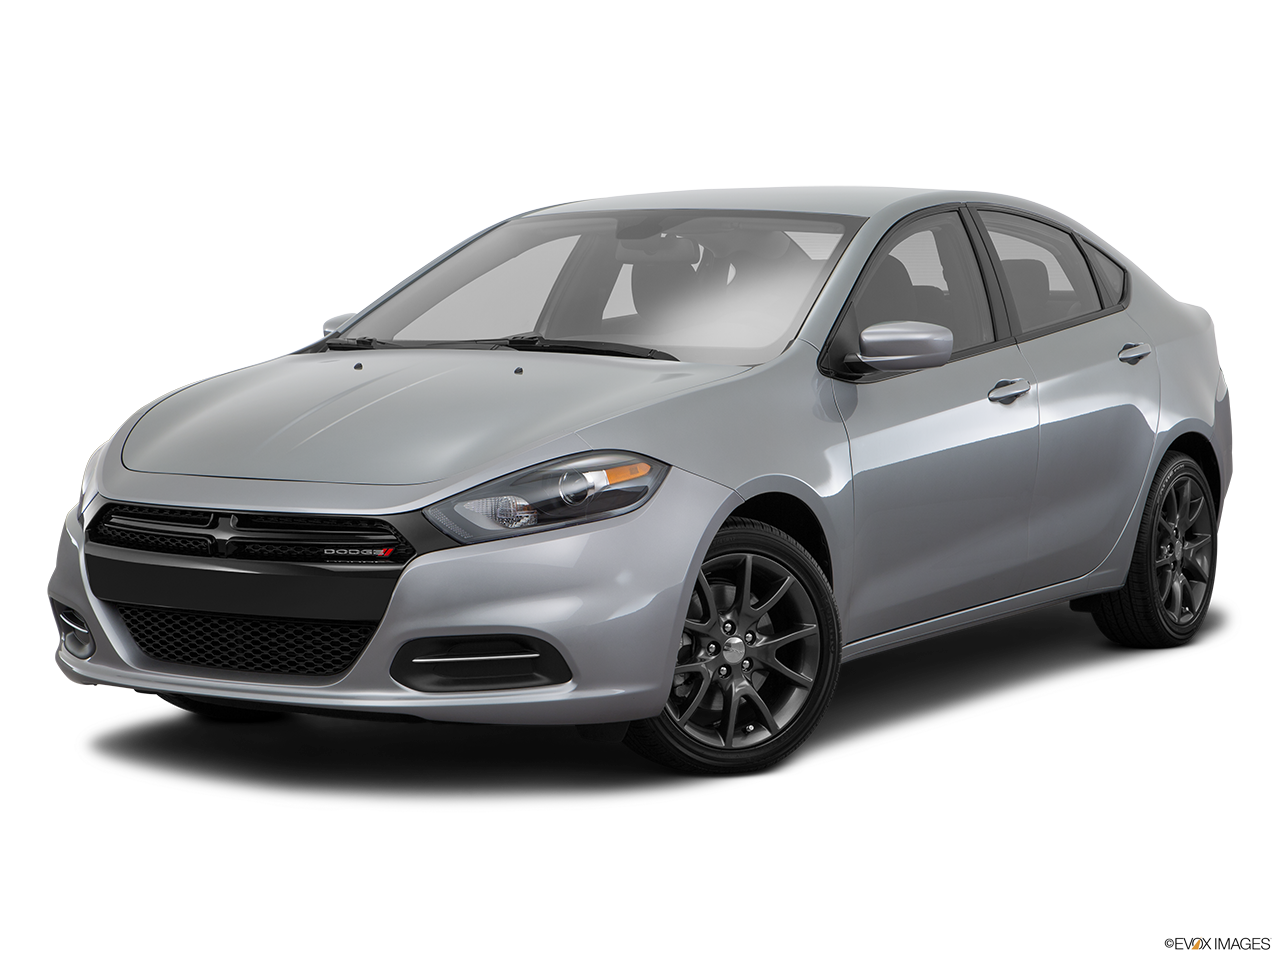 Test Drive A 2016 Dodge Dart at Premier Dodge in Tracy